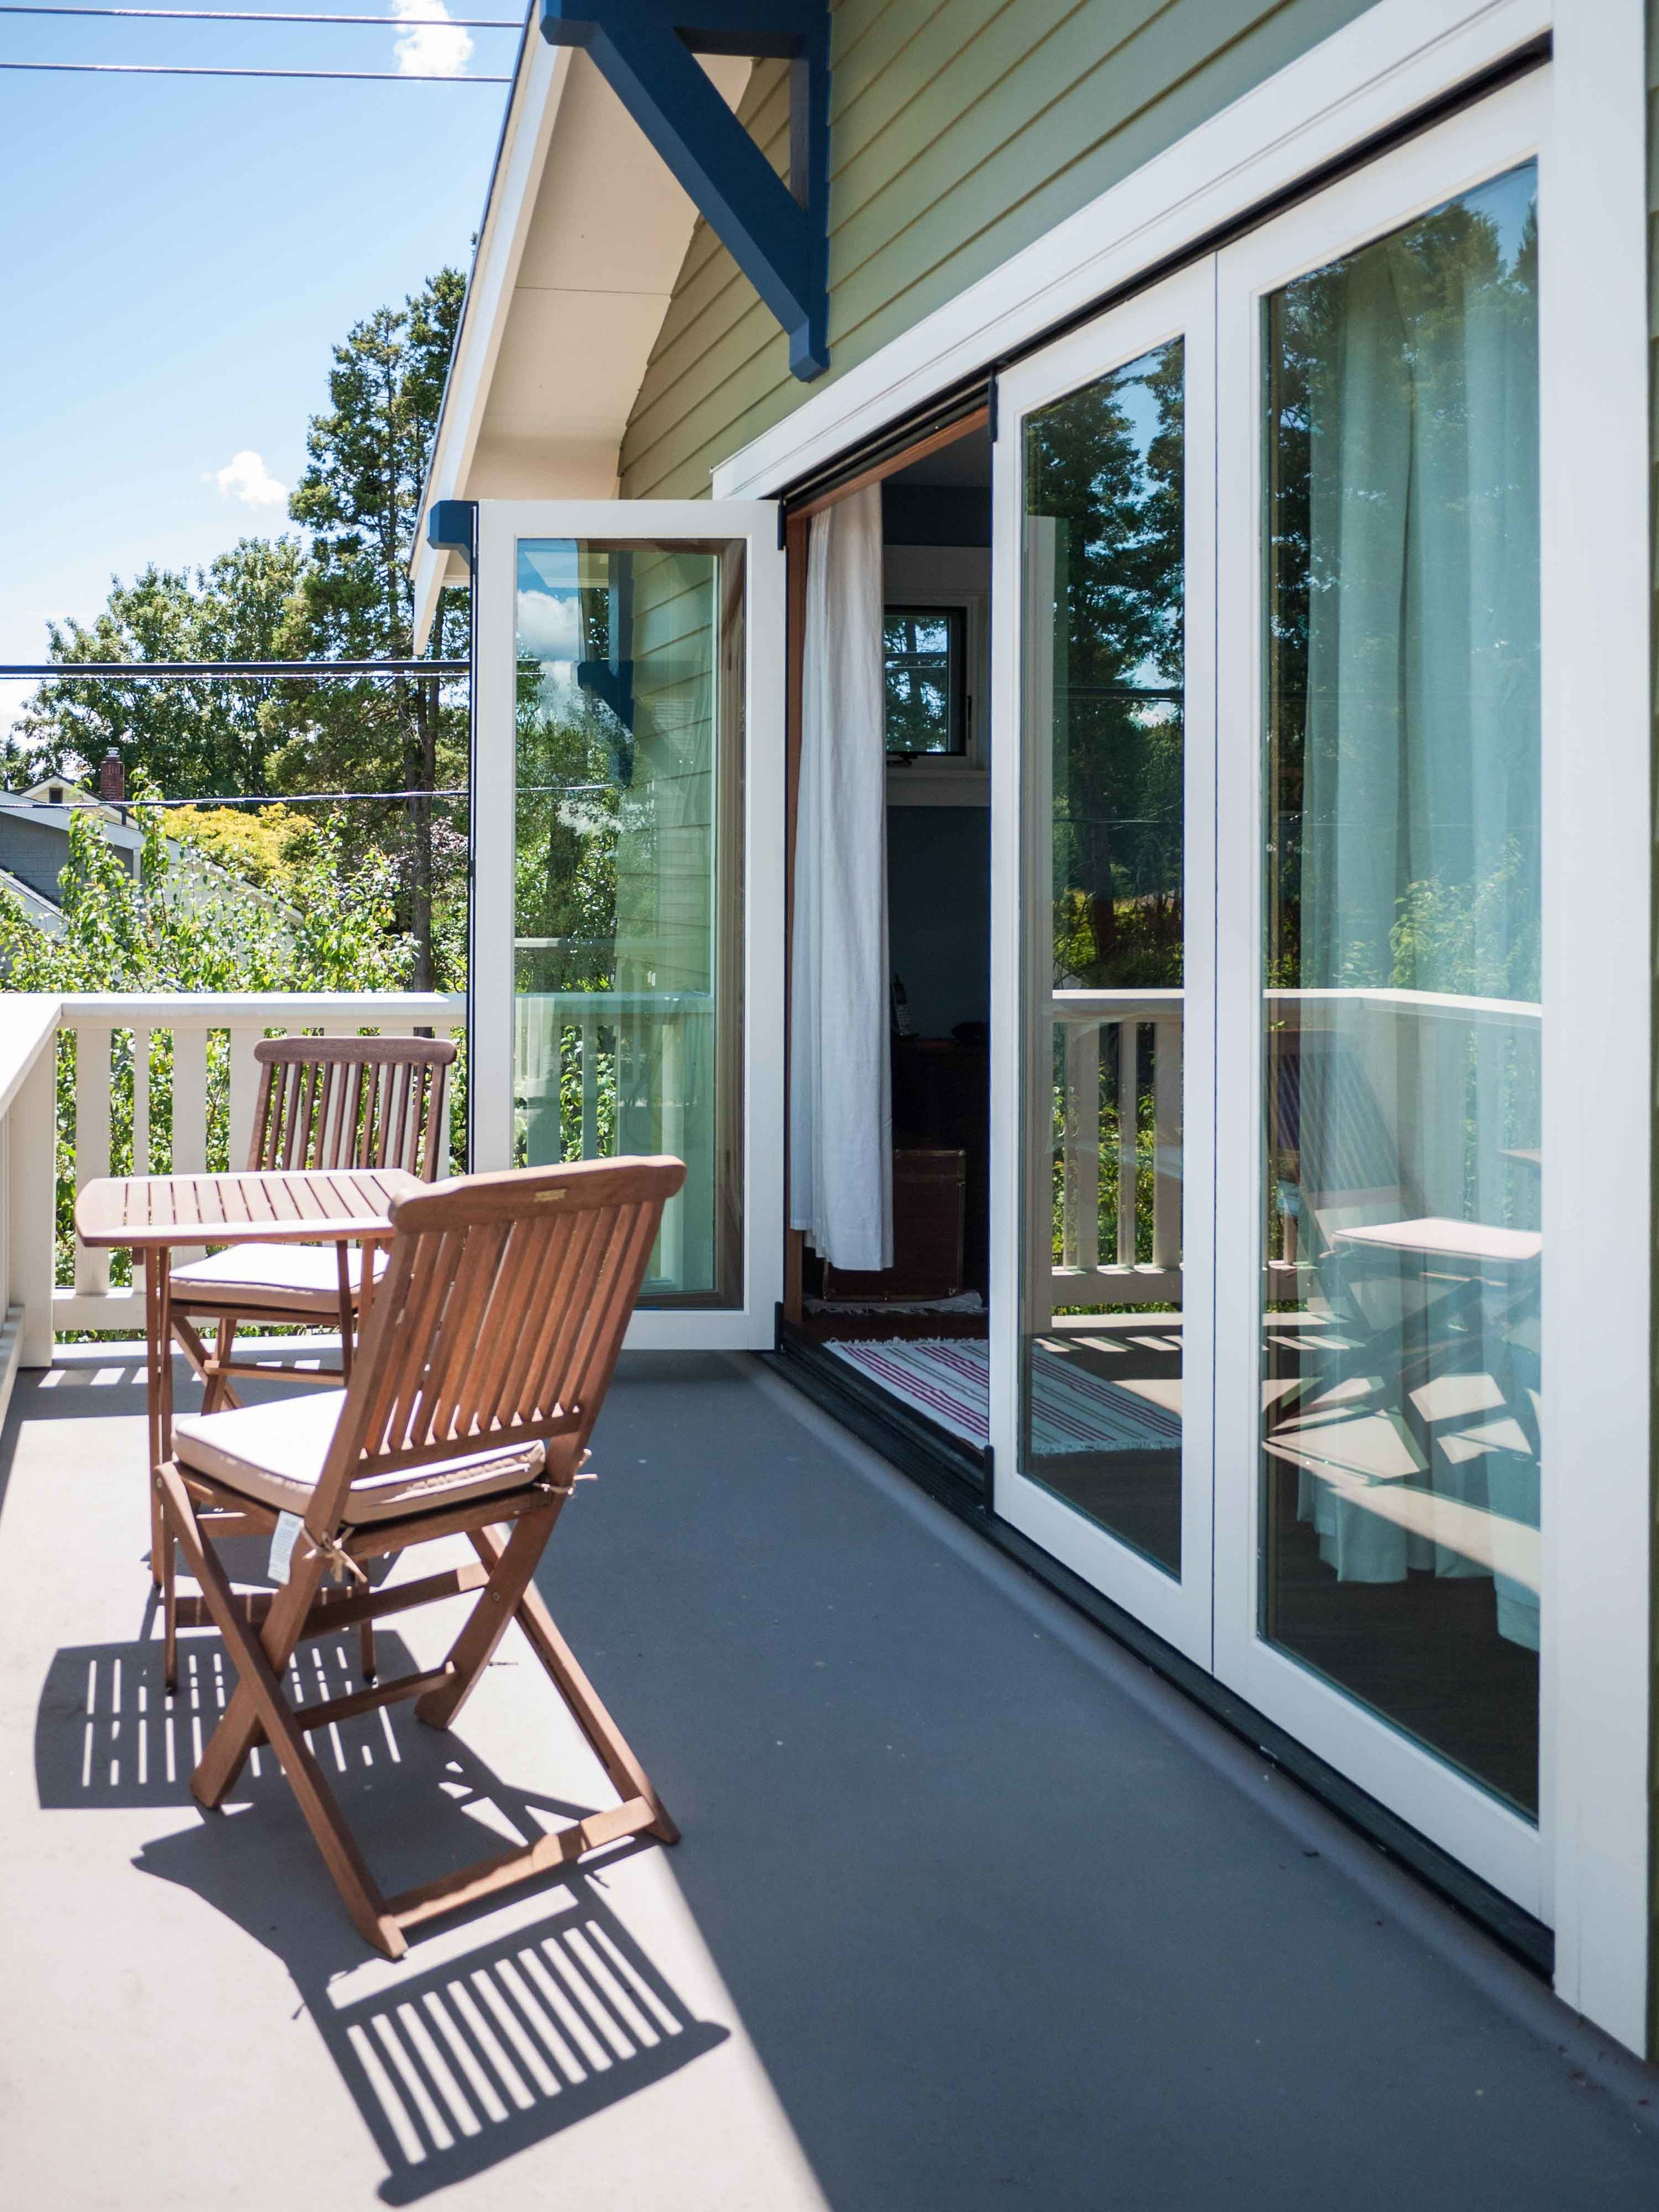 The second-story master suite opens to an eastern-facing deck with views of the Cascades.